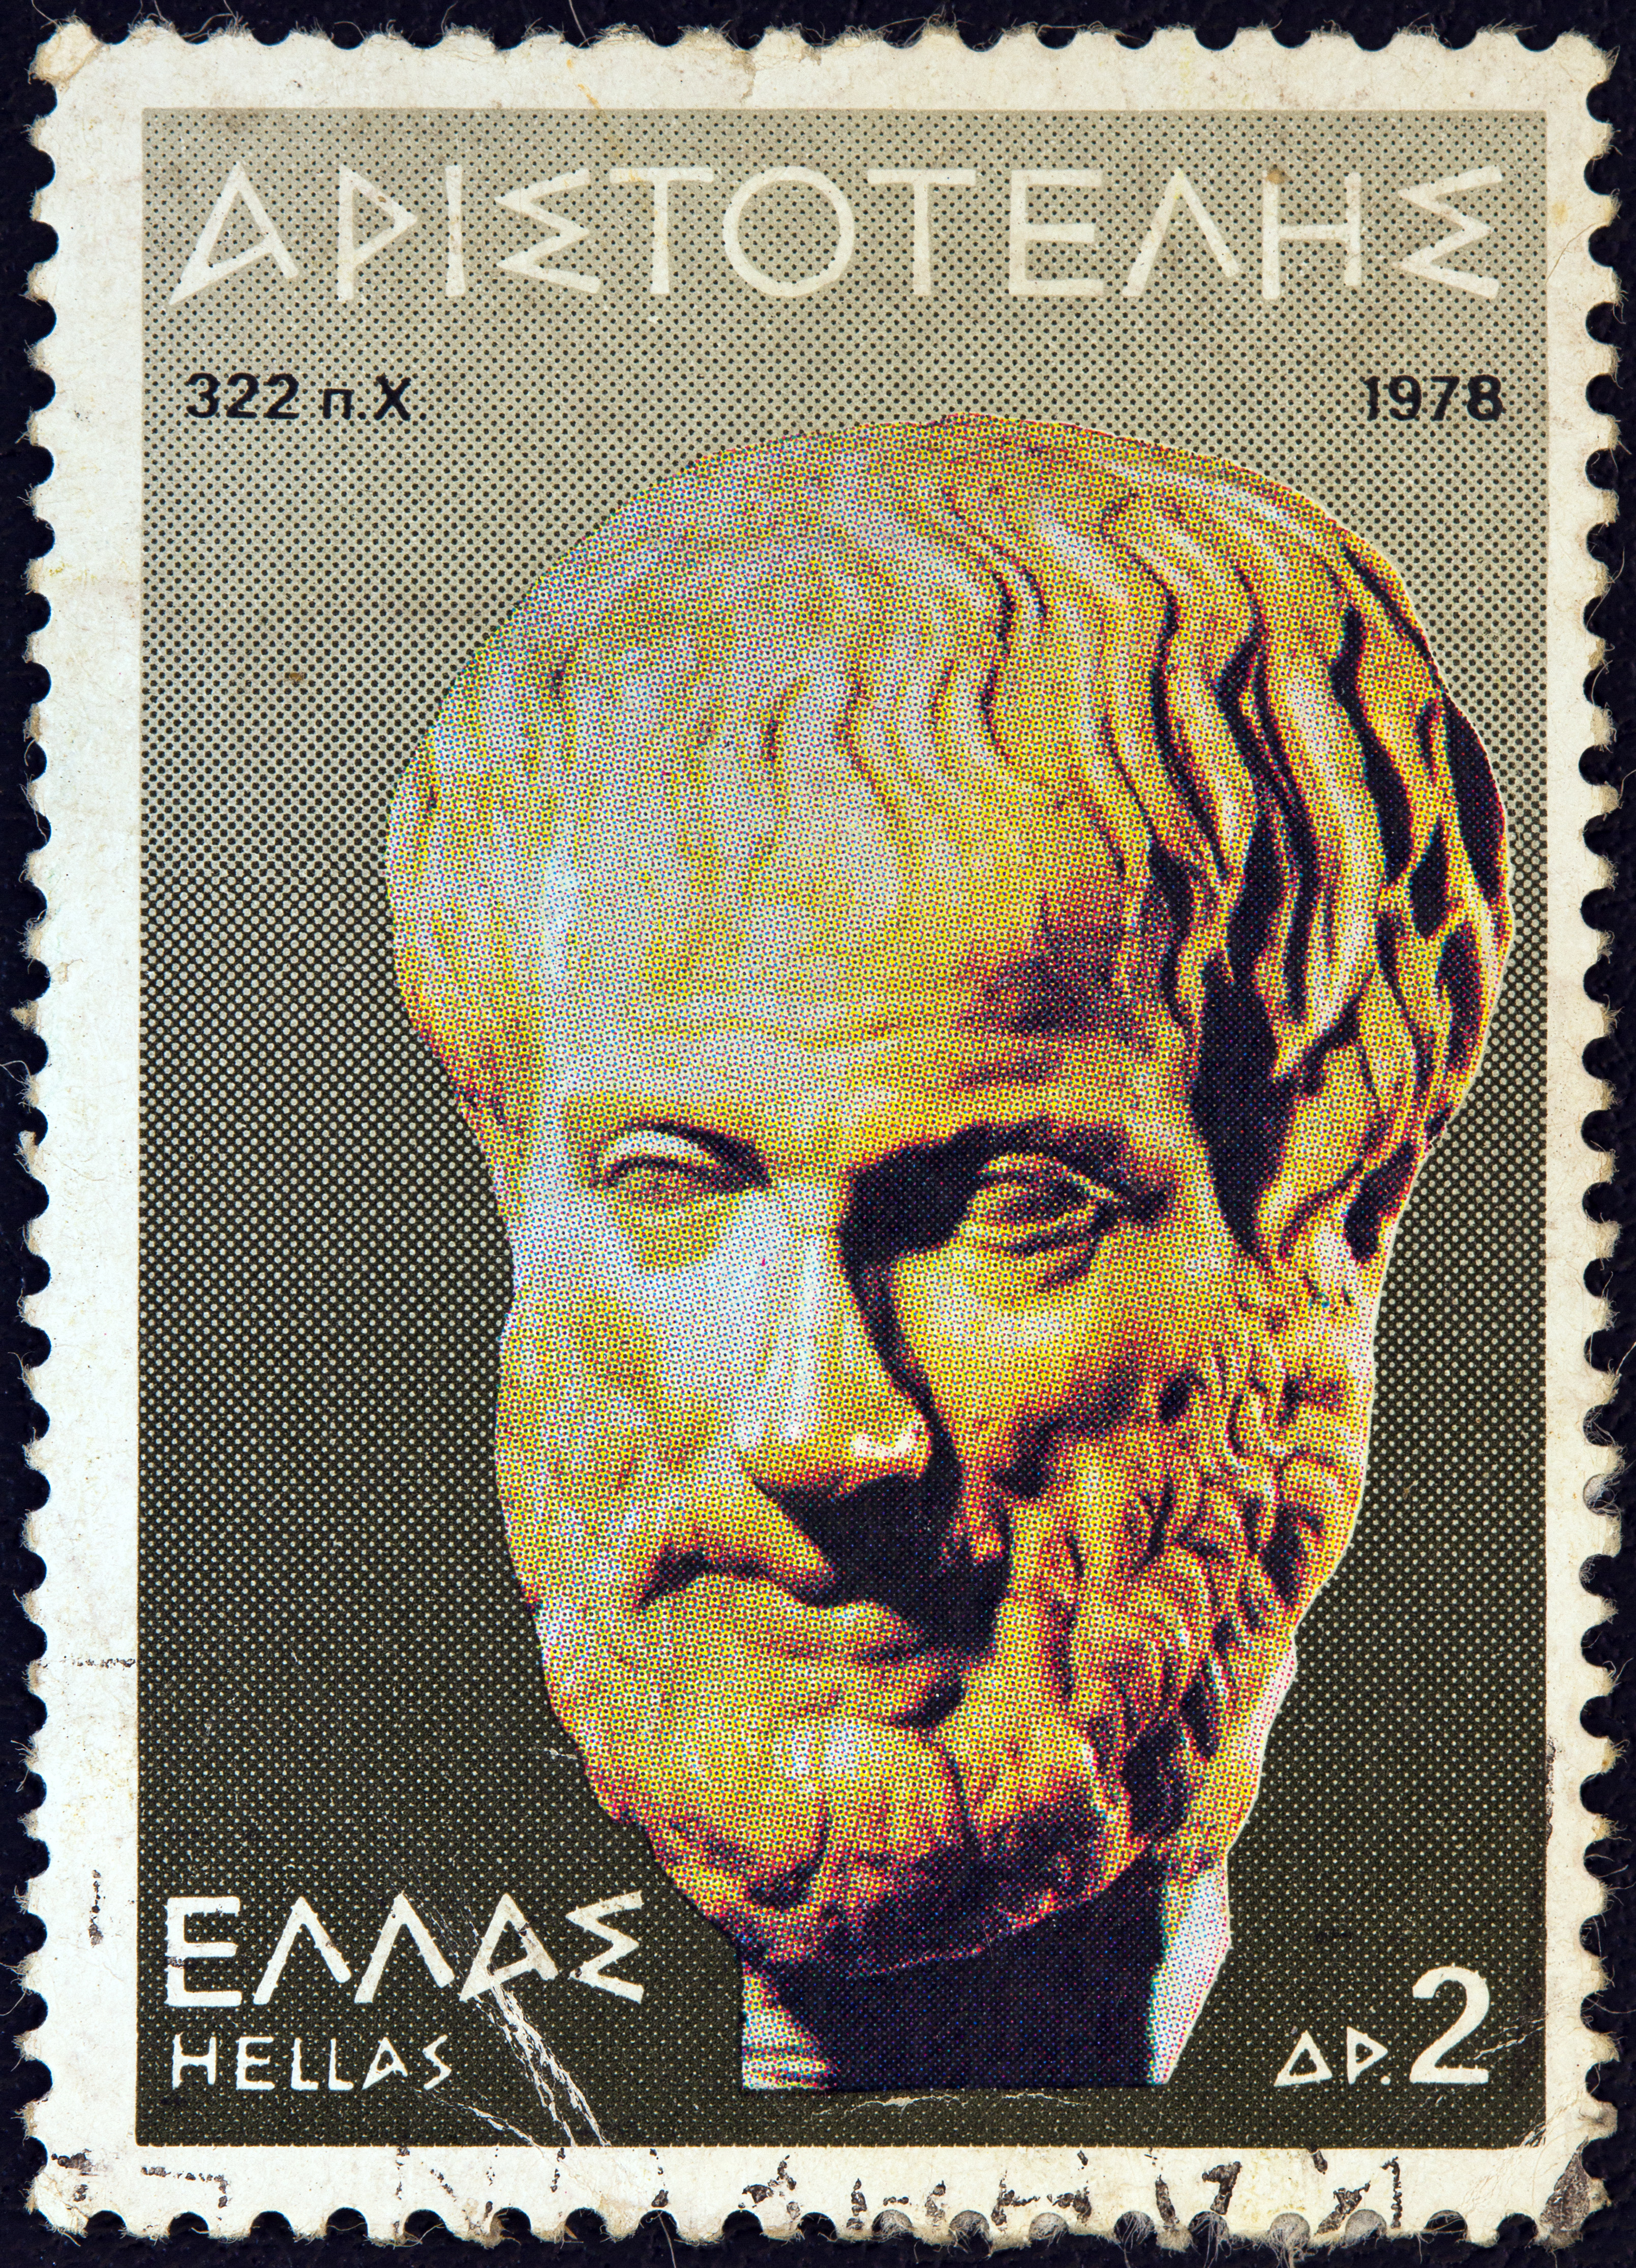 research papers aristotle virtue happiness January 15, 2017 essays, philosophy steve johnson confucius and aristotle on virtue philosophers aristotle and confucius are both famous persons in the world's history aristotle widely links the concept of virtue with happiness.